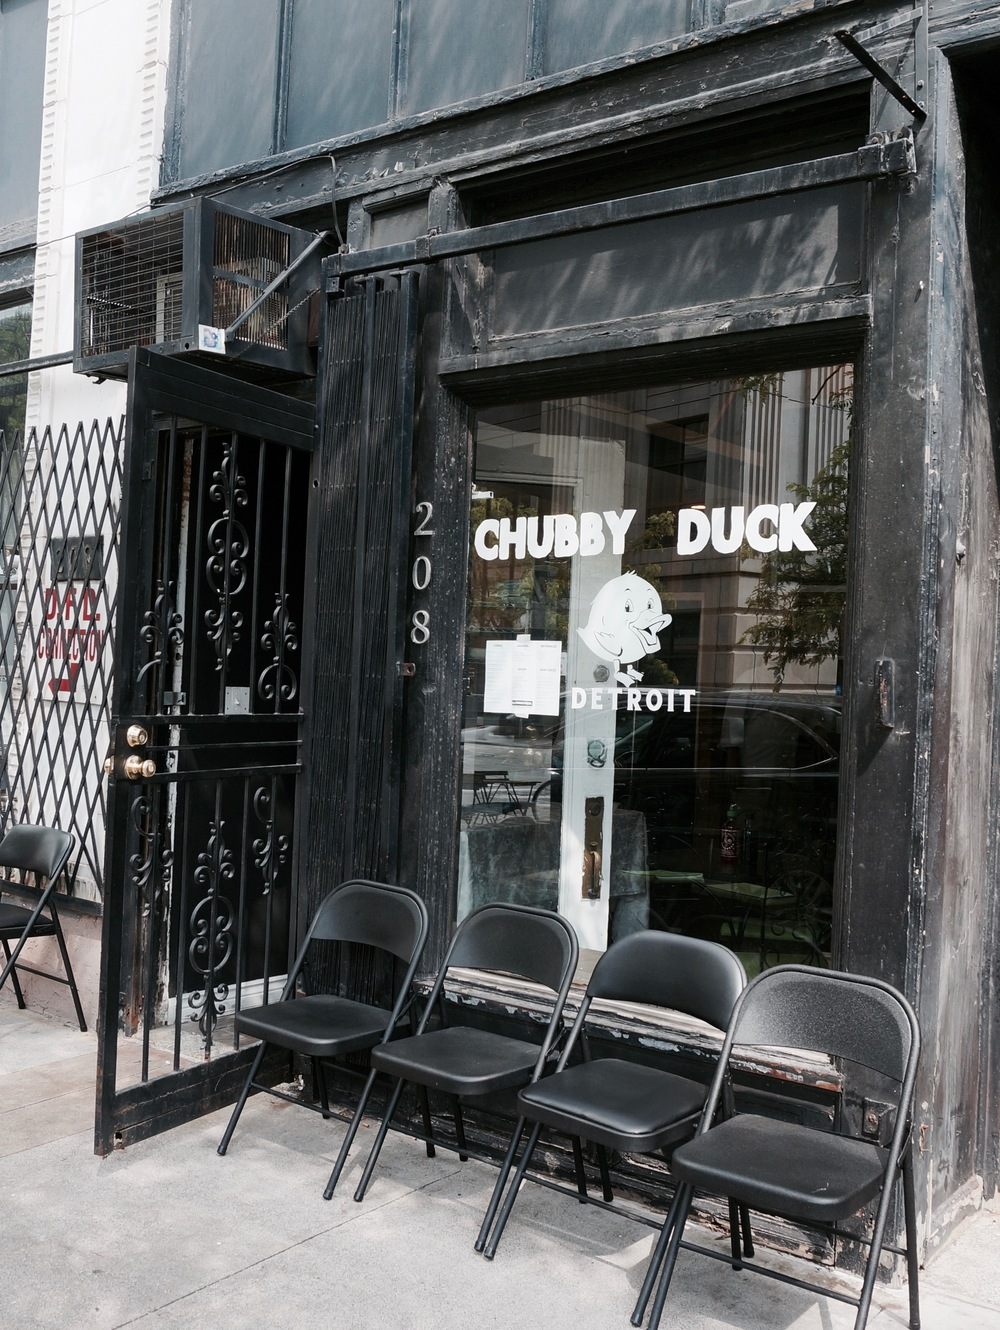 Try A Combo For 12 That Includes One Salad And Drink Chubby Duck Is Hiring If You Are Looking Job Downtown Contact More